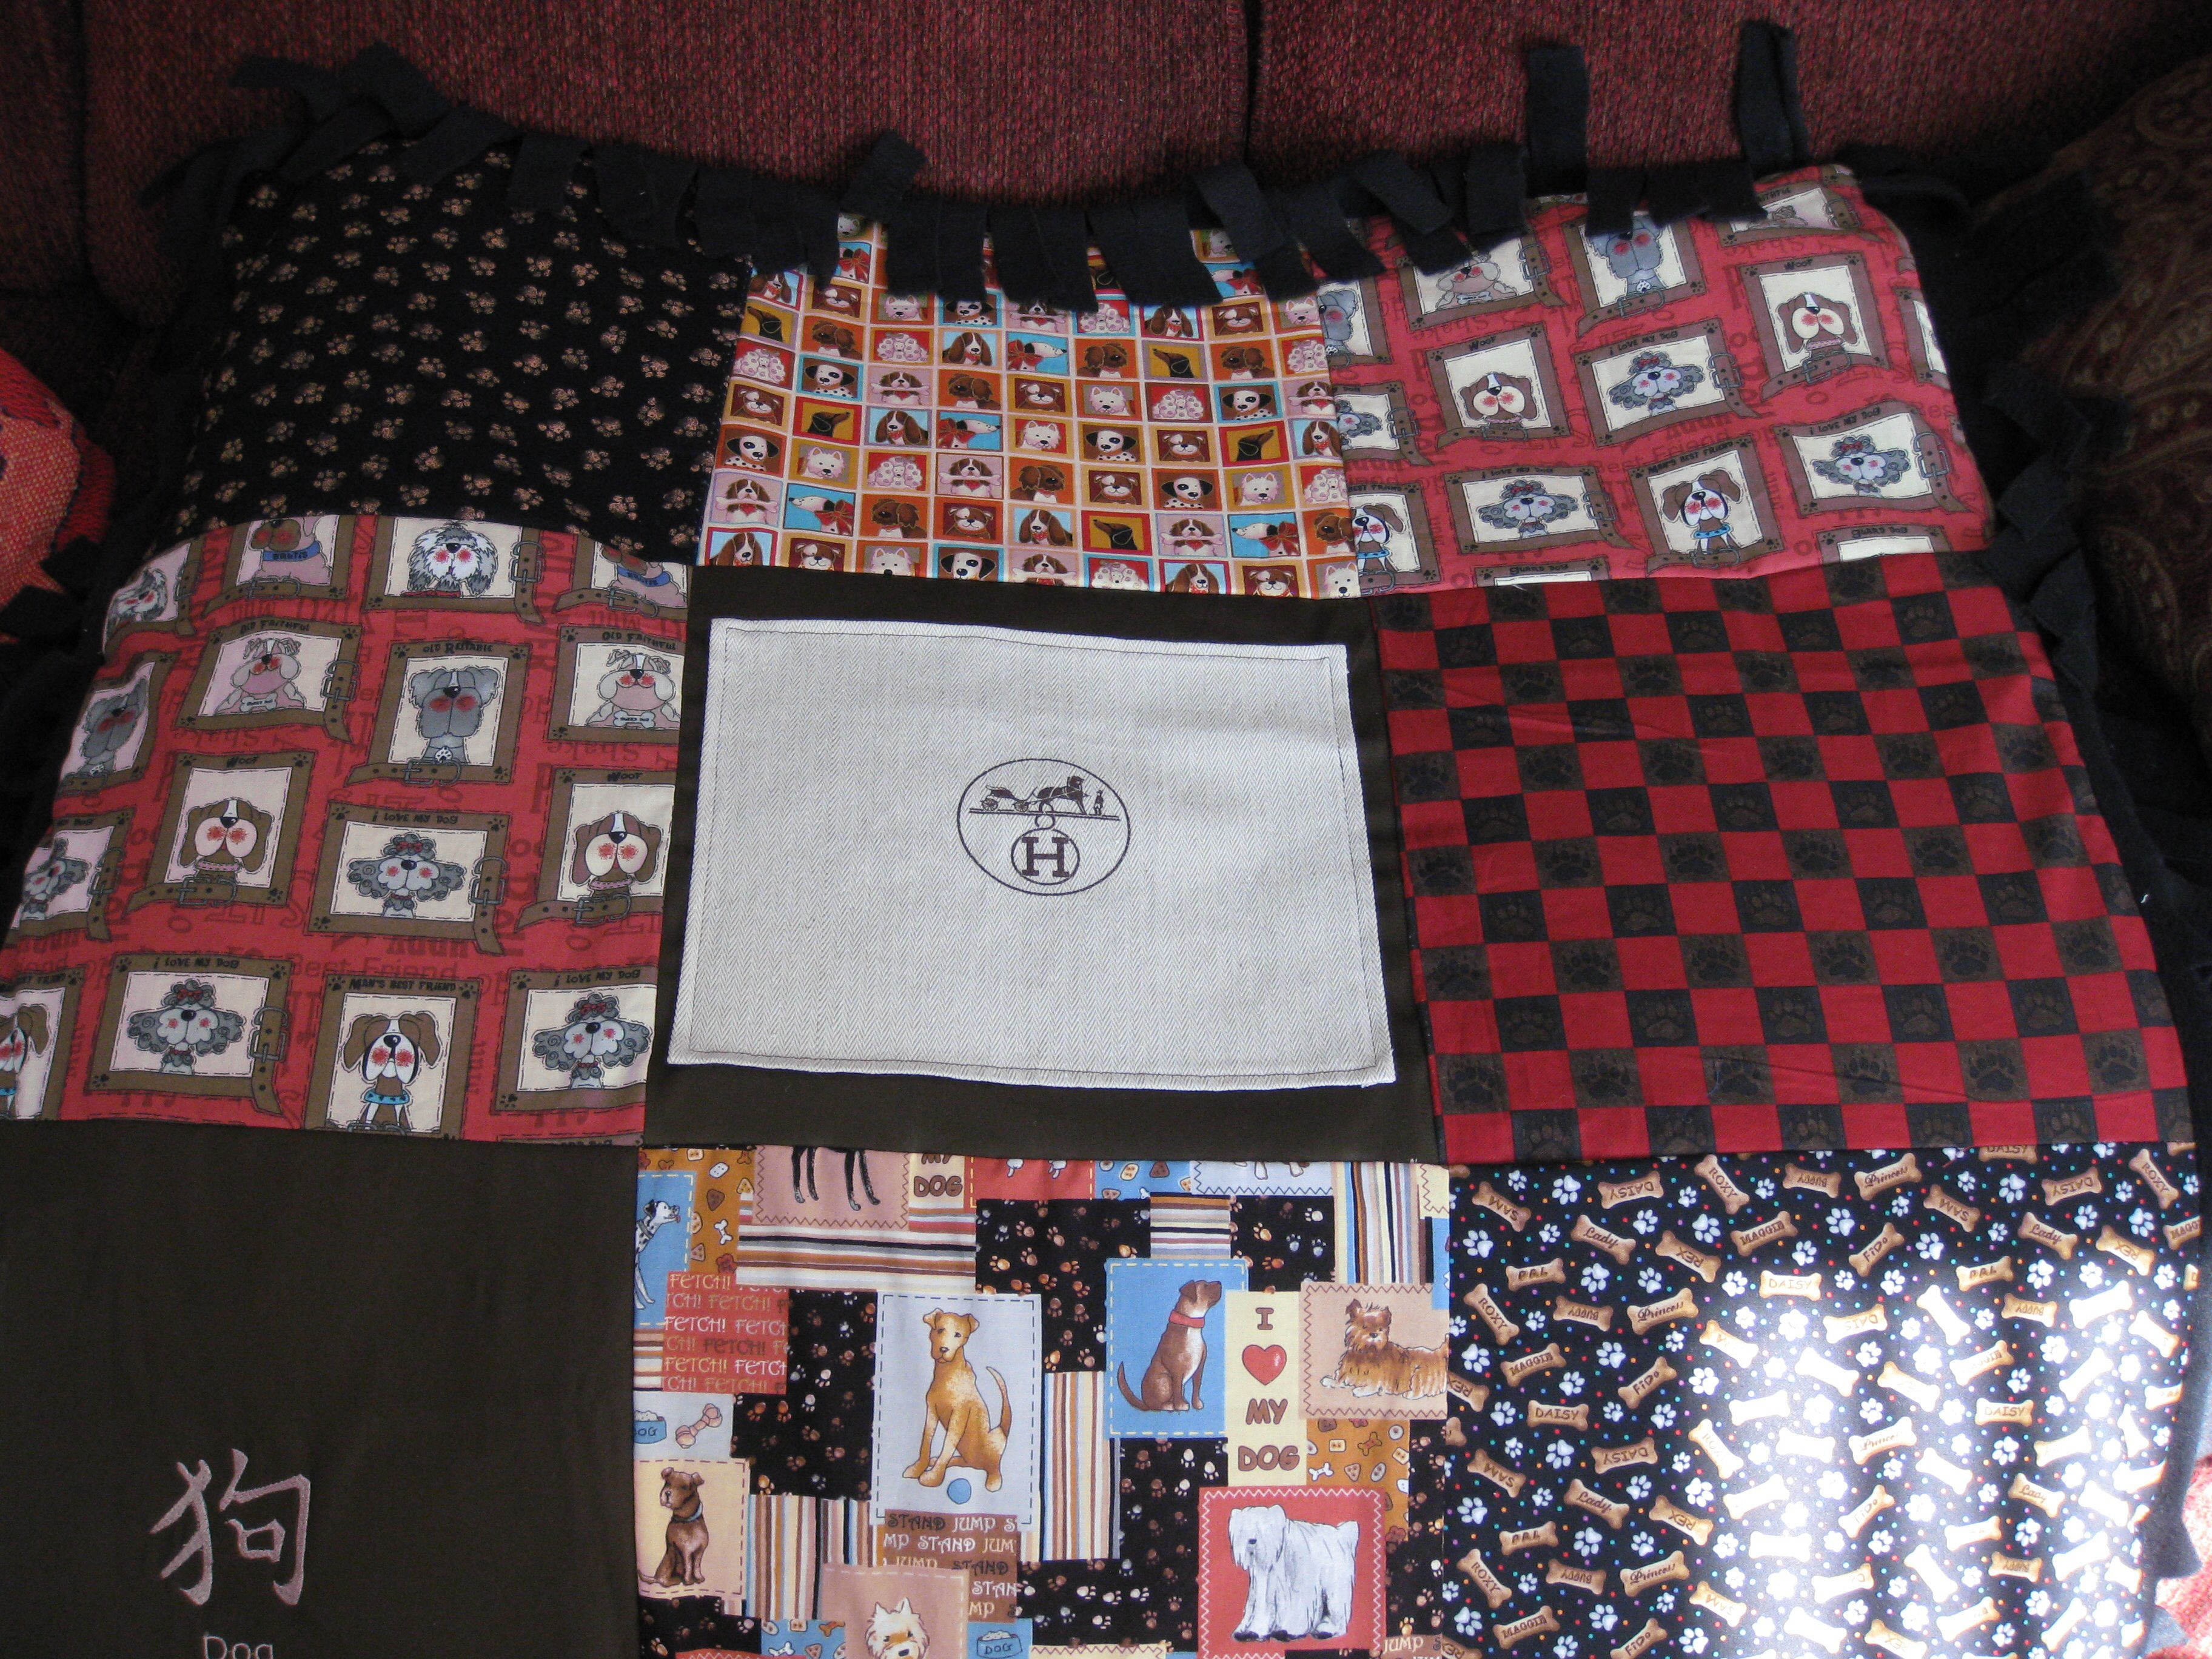 Dog blanket with Hermes dust bag cover incorporated in